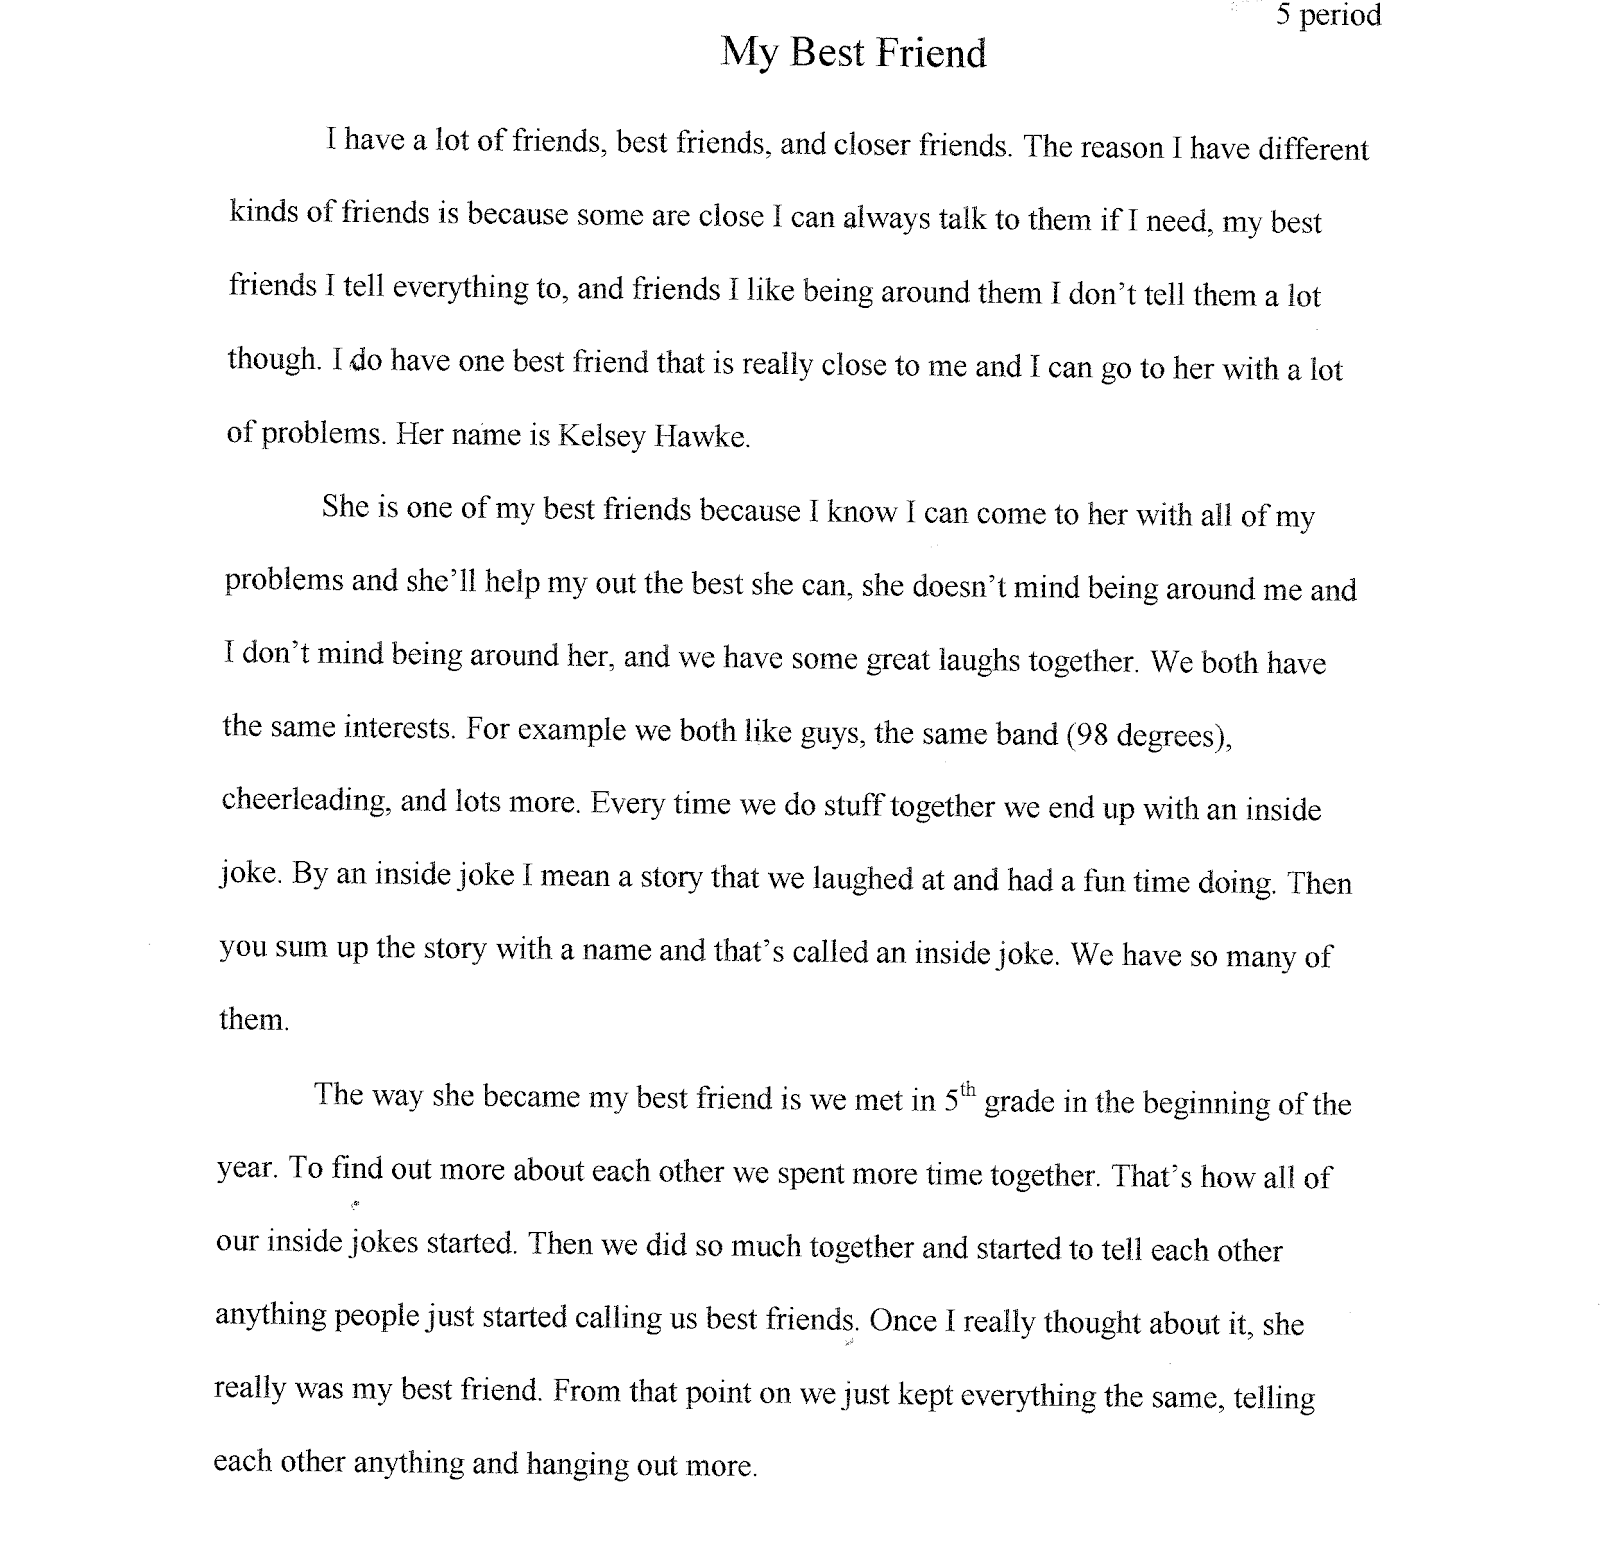 023 Essay Example 6th Bestfriend Post1 Outstanding Childhood My 150 Words Ideas Examples Full